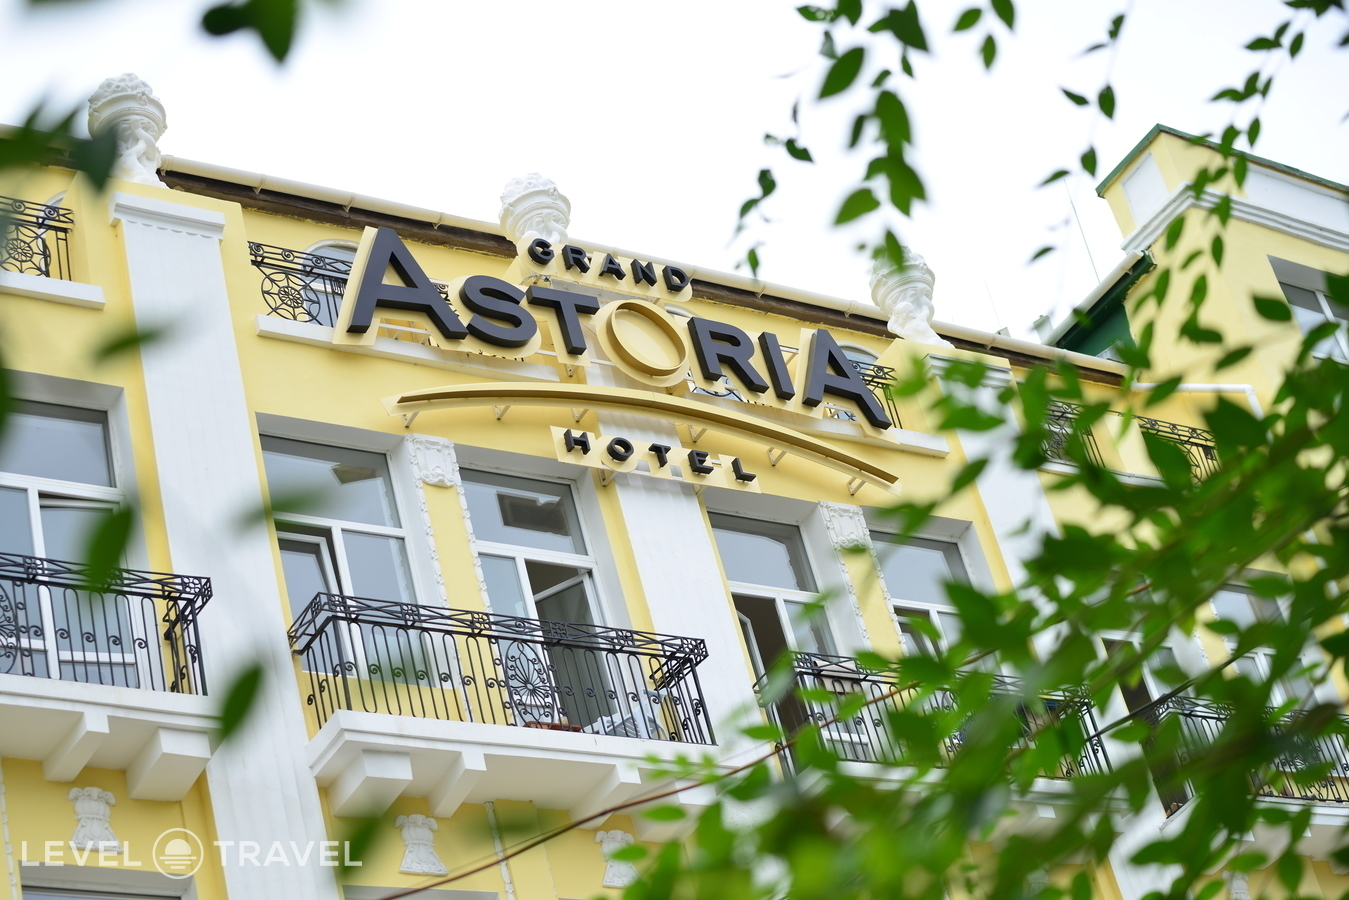 Тур в Grand Astoria (Ex. Астория), Феодосия